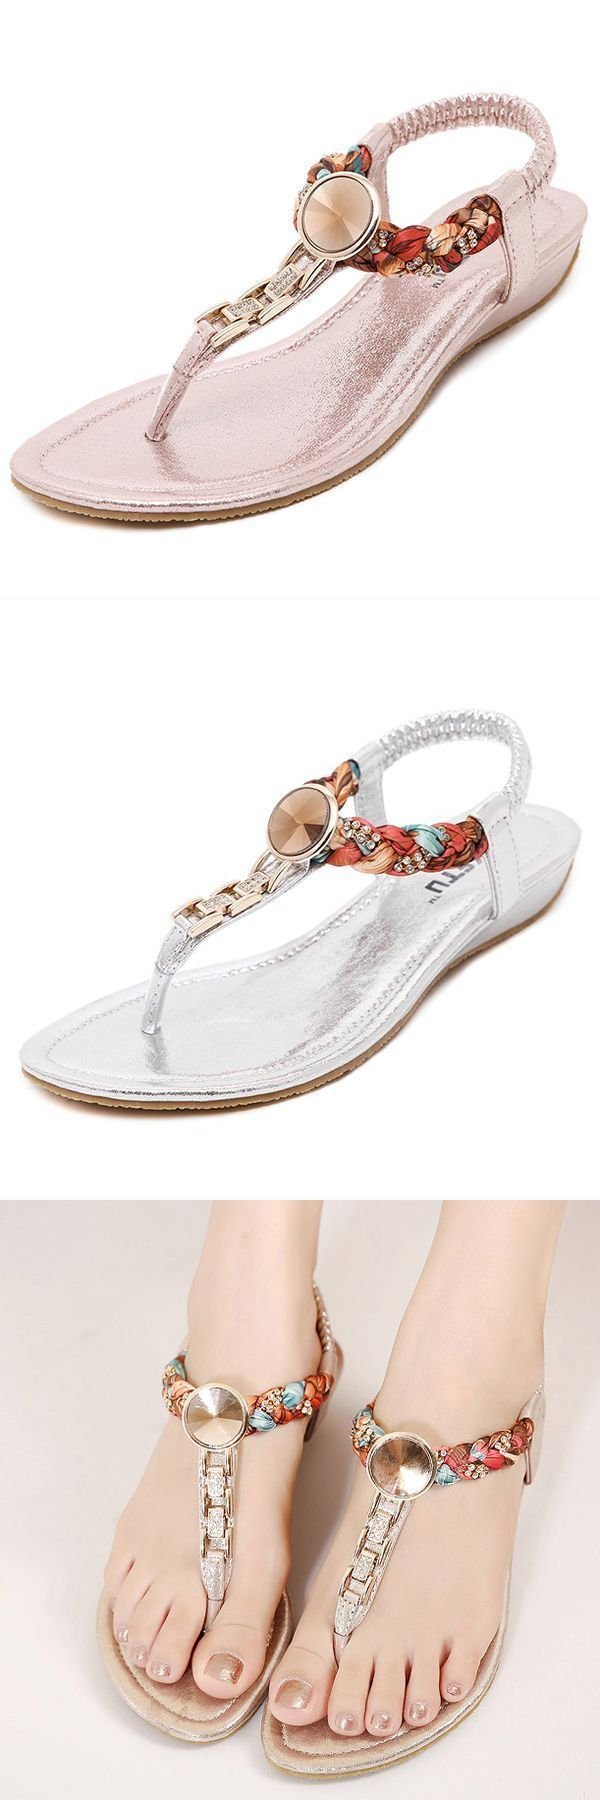 9f510ee0e75f Us size 5-10 women summer flat soft casual beach bohemian comfortable  fashion sandals shoes sandals caribbean  clarks  sandals  merrell  sandals   q  form ...